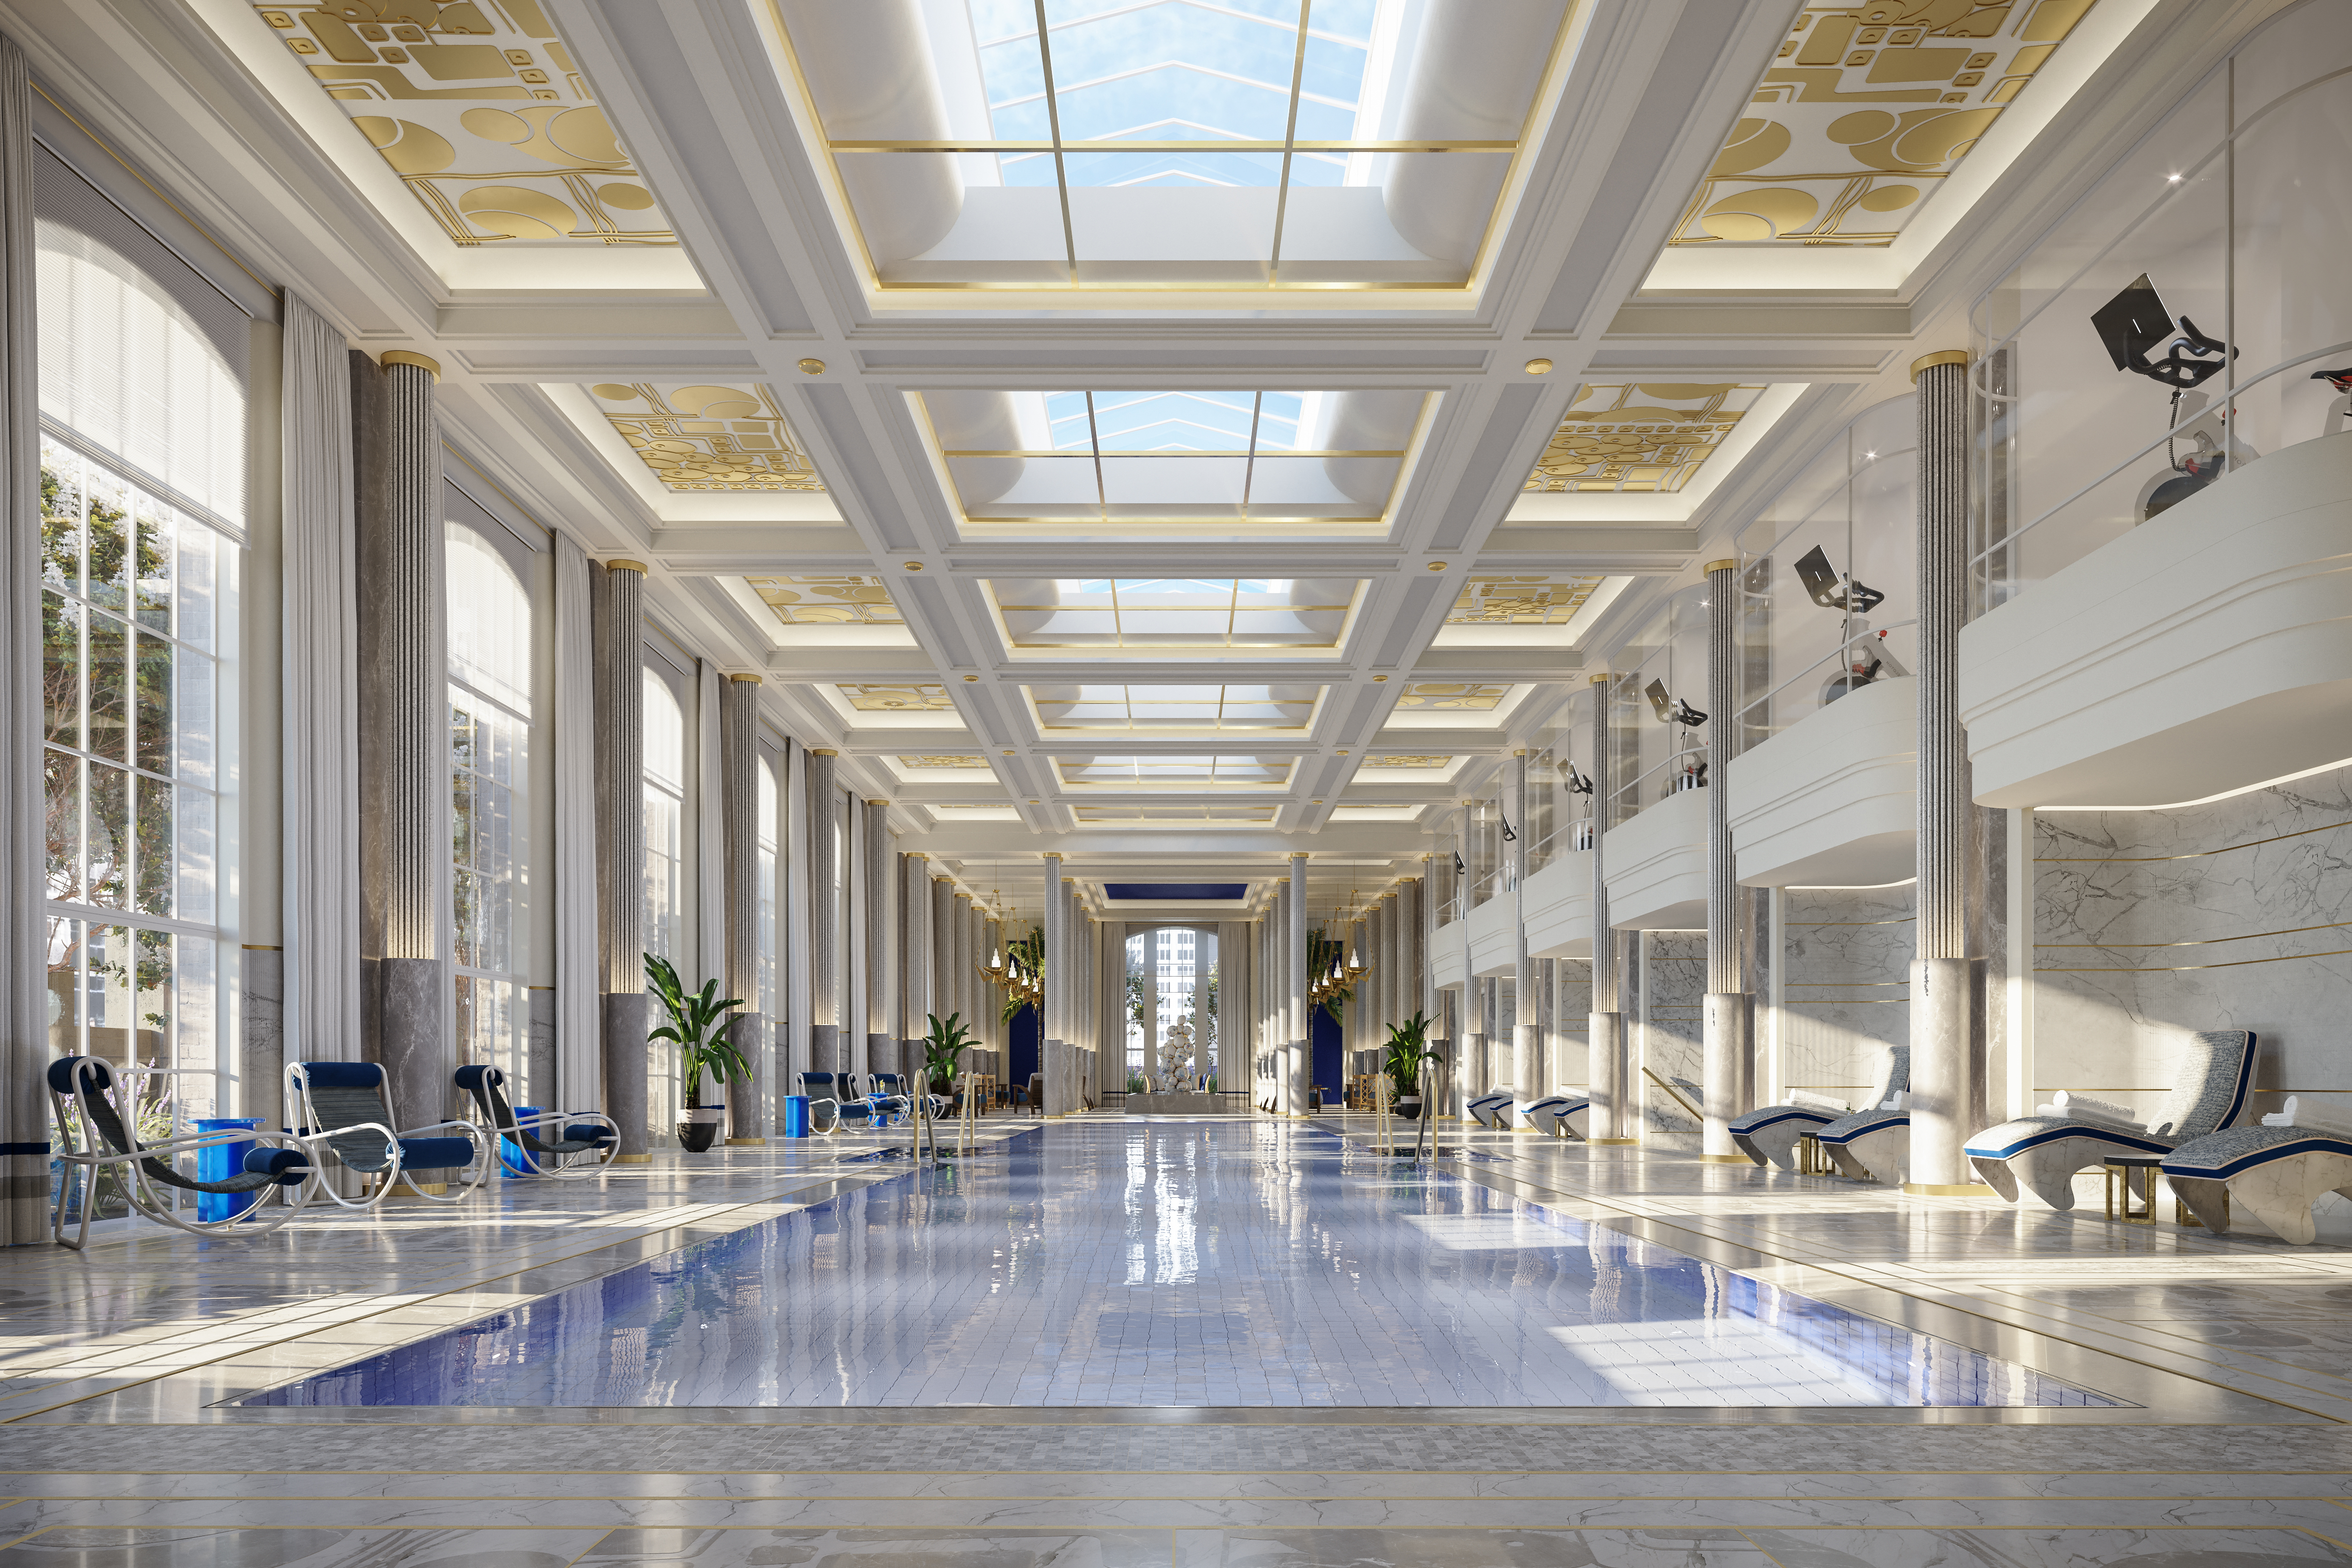 A large indoor swimming pool surrounded by doric columns, large windows, and a skylight.